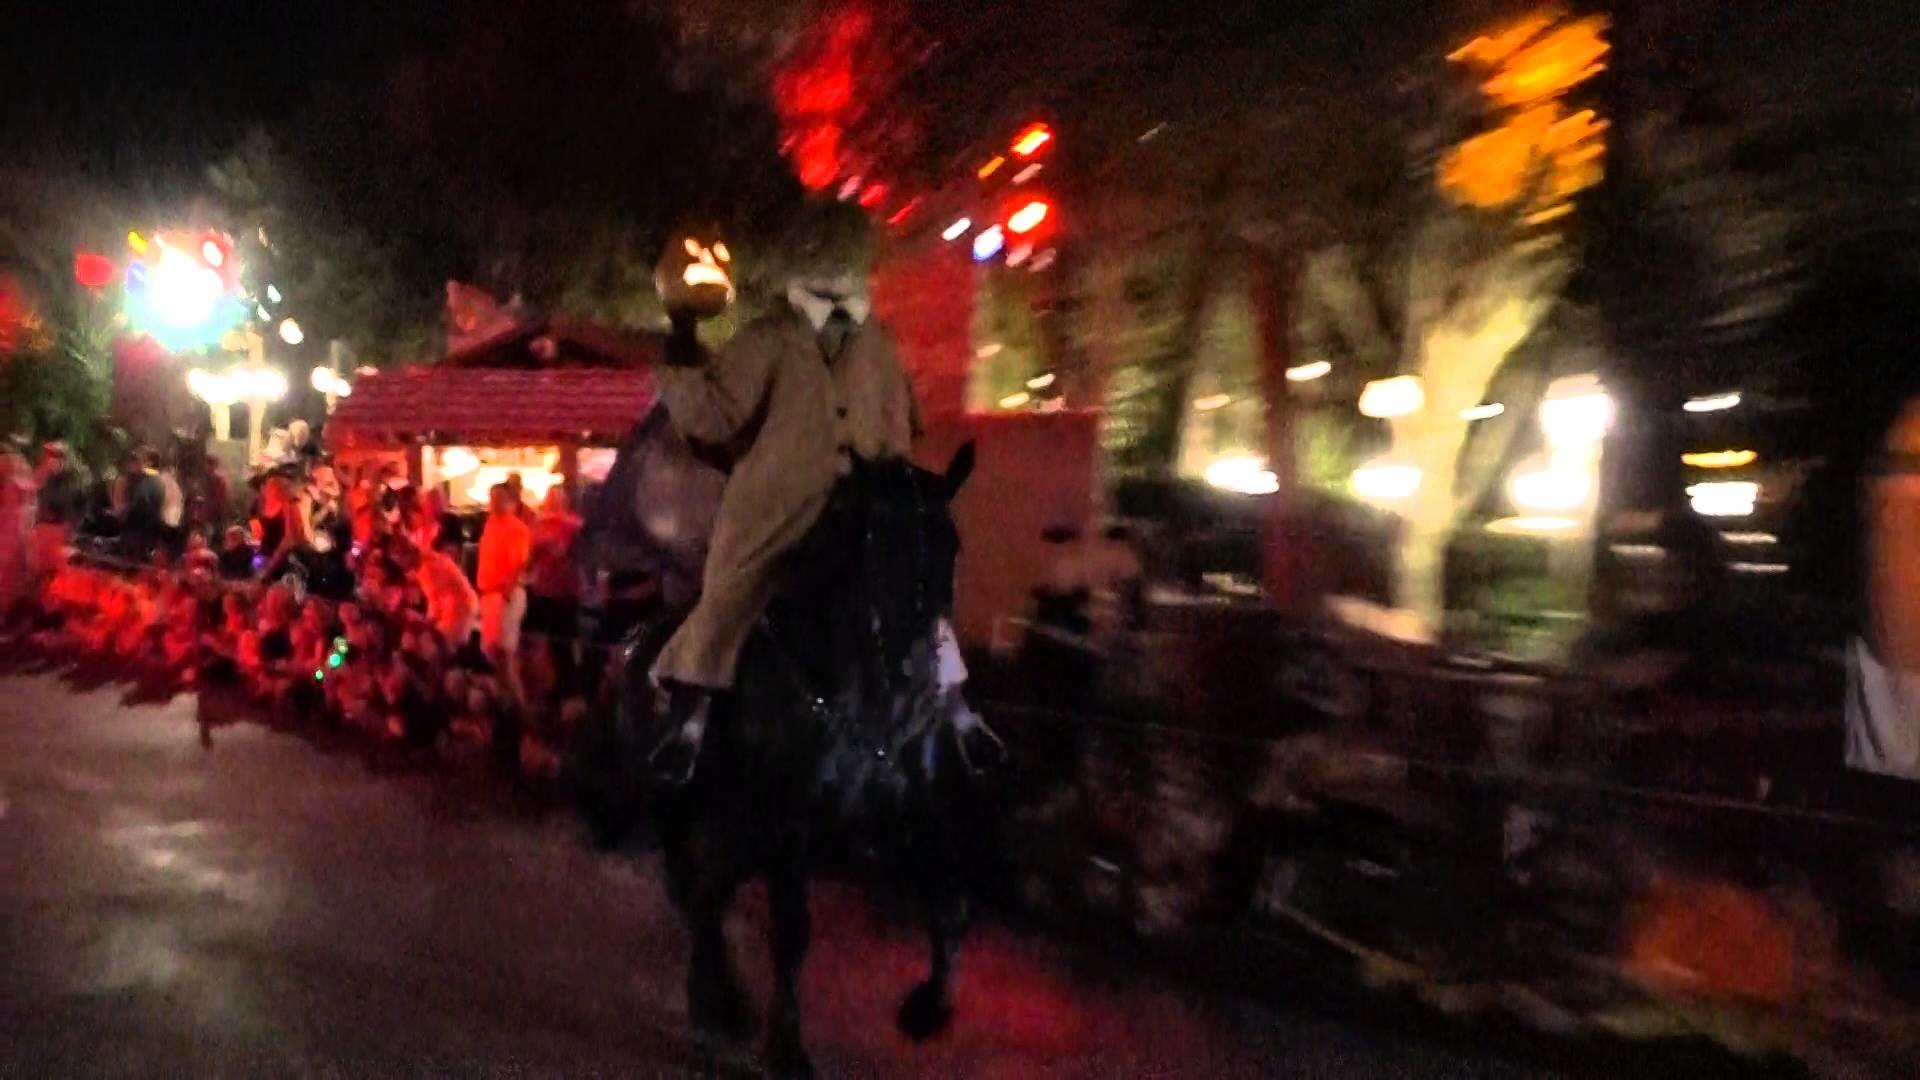 1920x1080 Ride of the Headless Horseman at Disney World Halloween Party